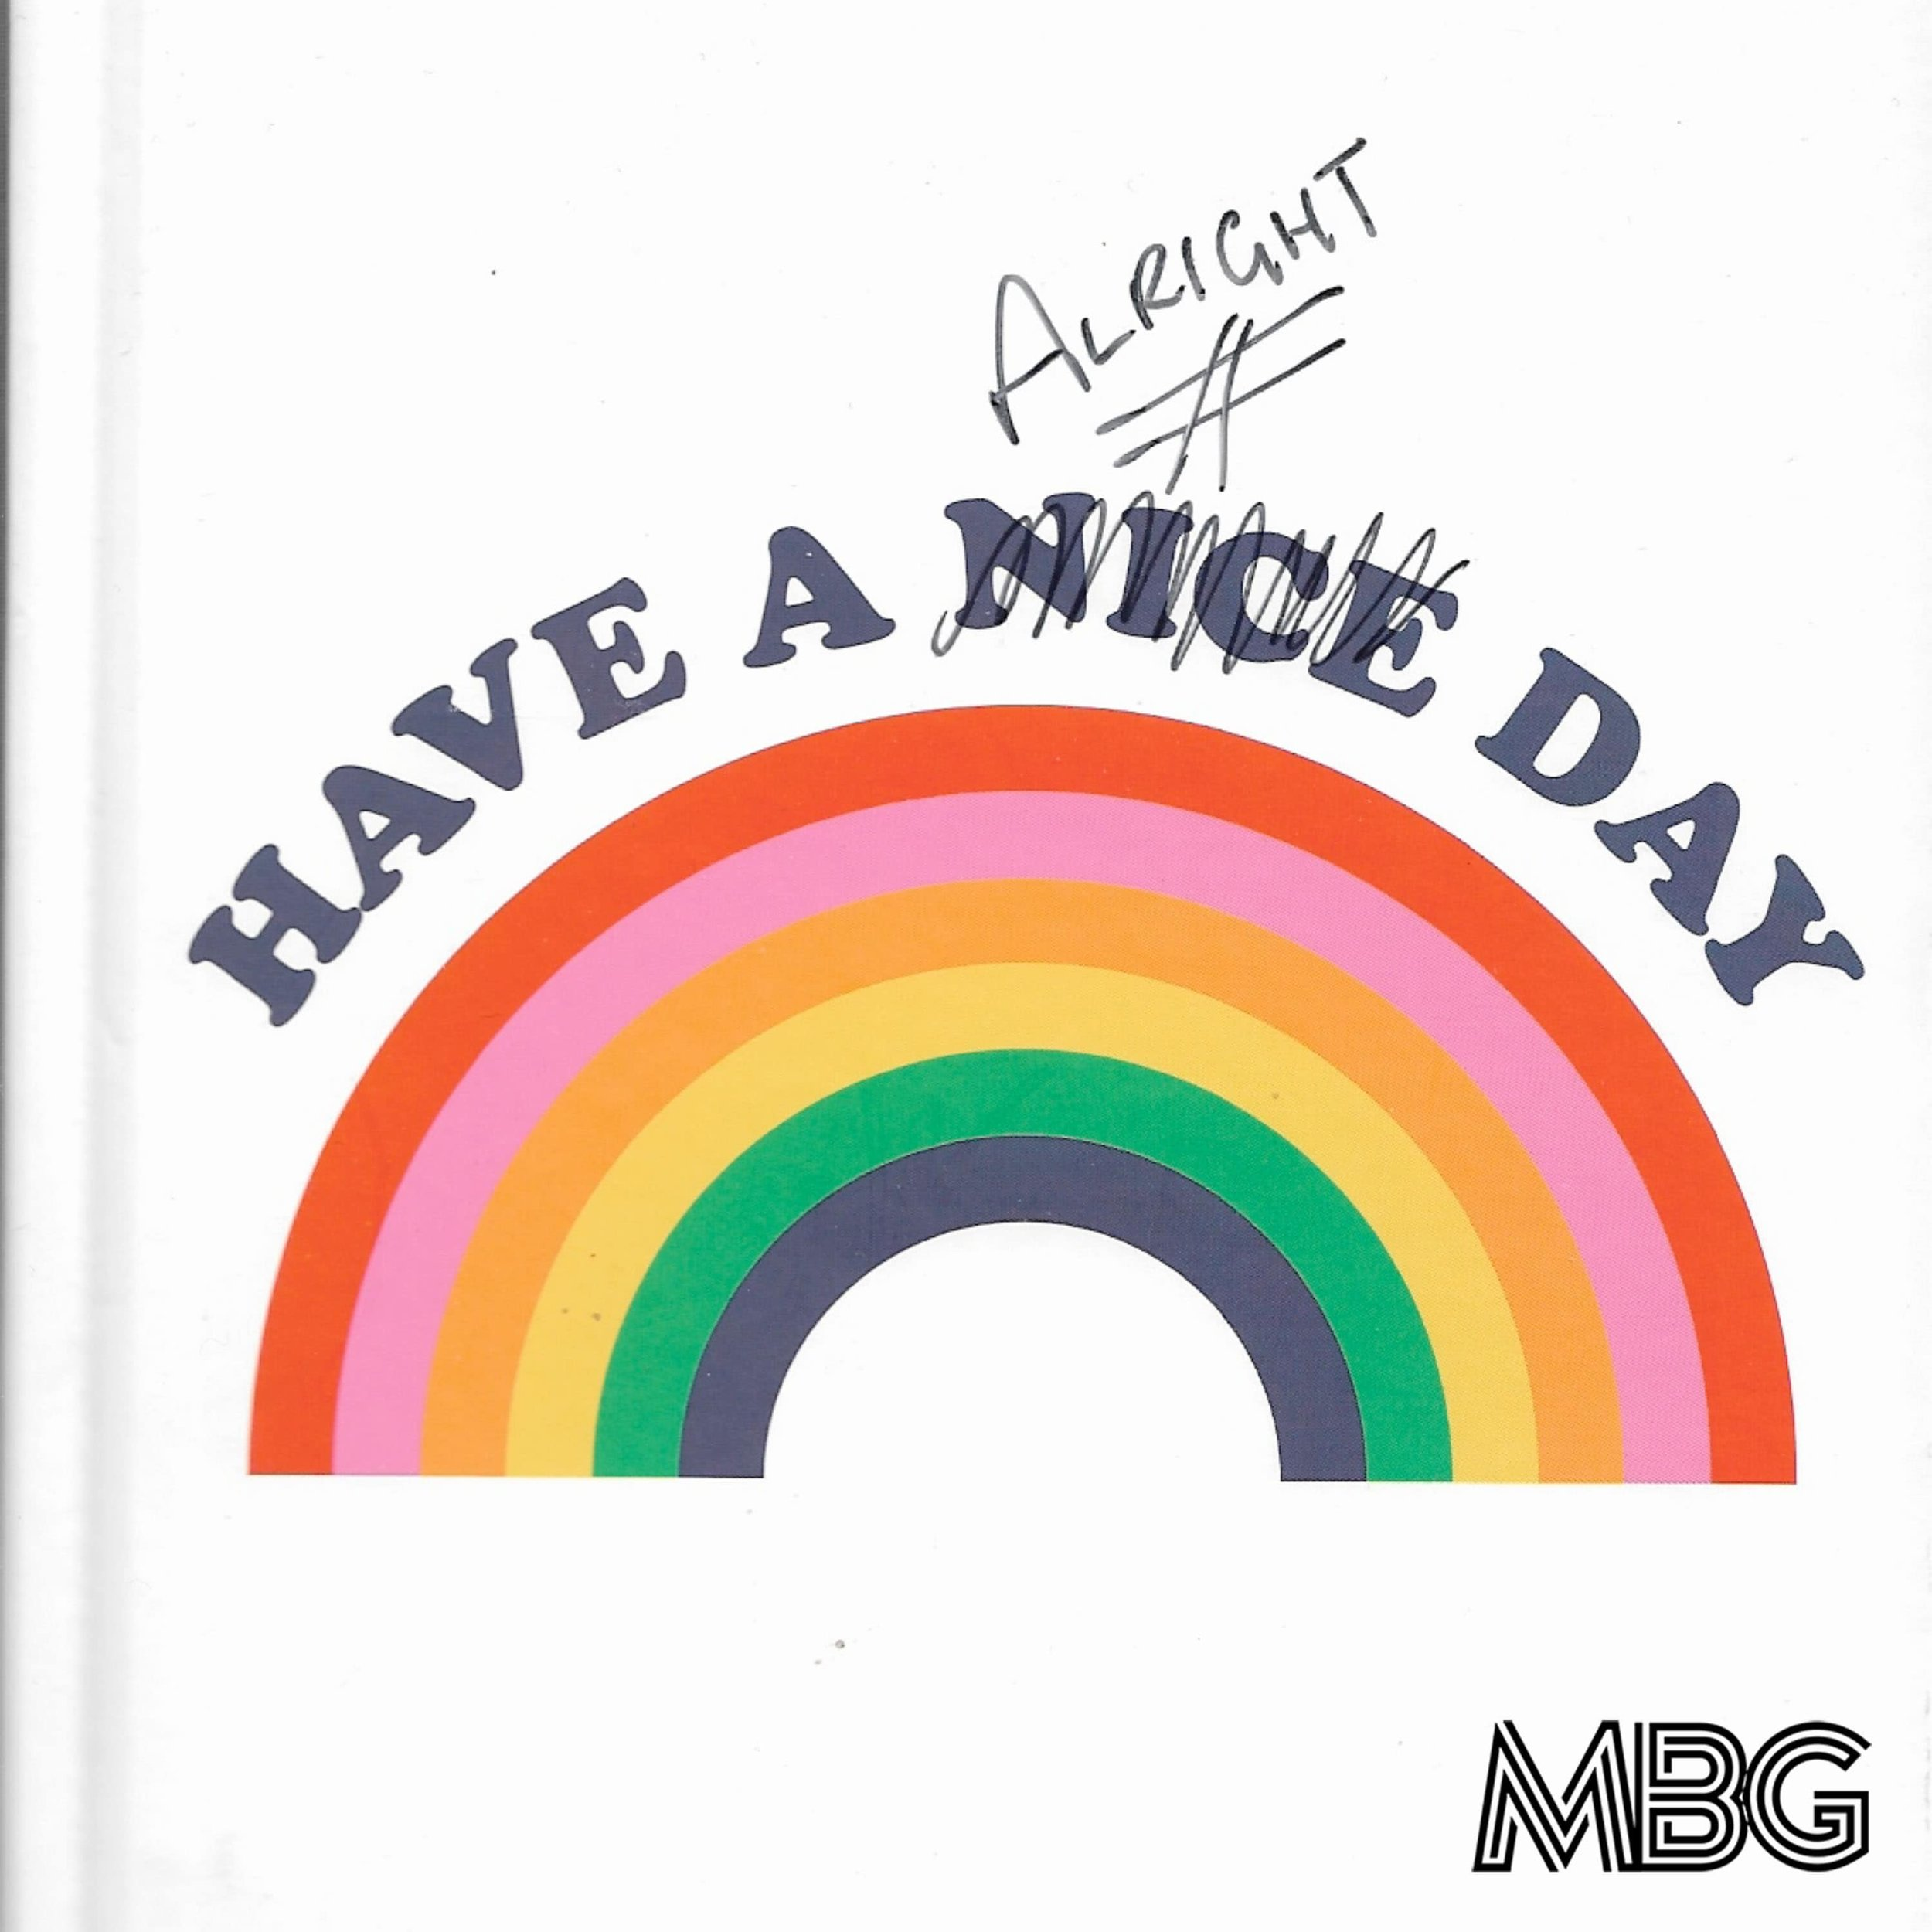 MBG - Have a Alright Day EP.jpg